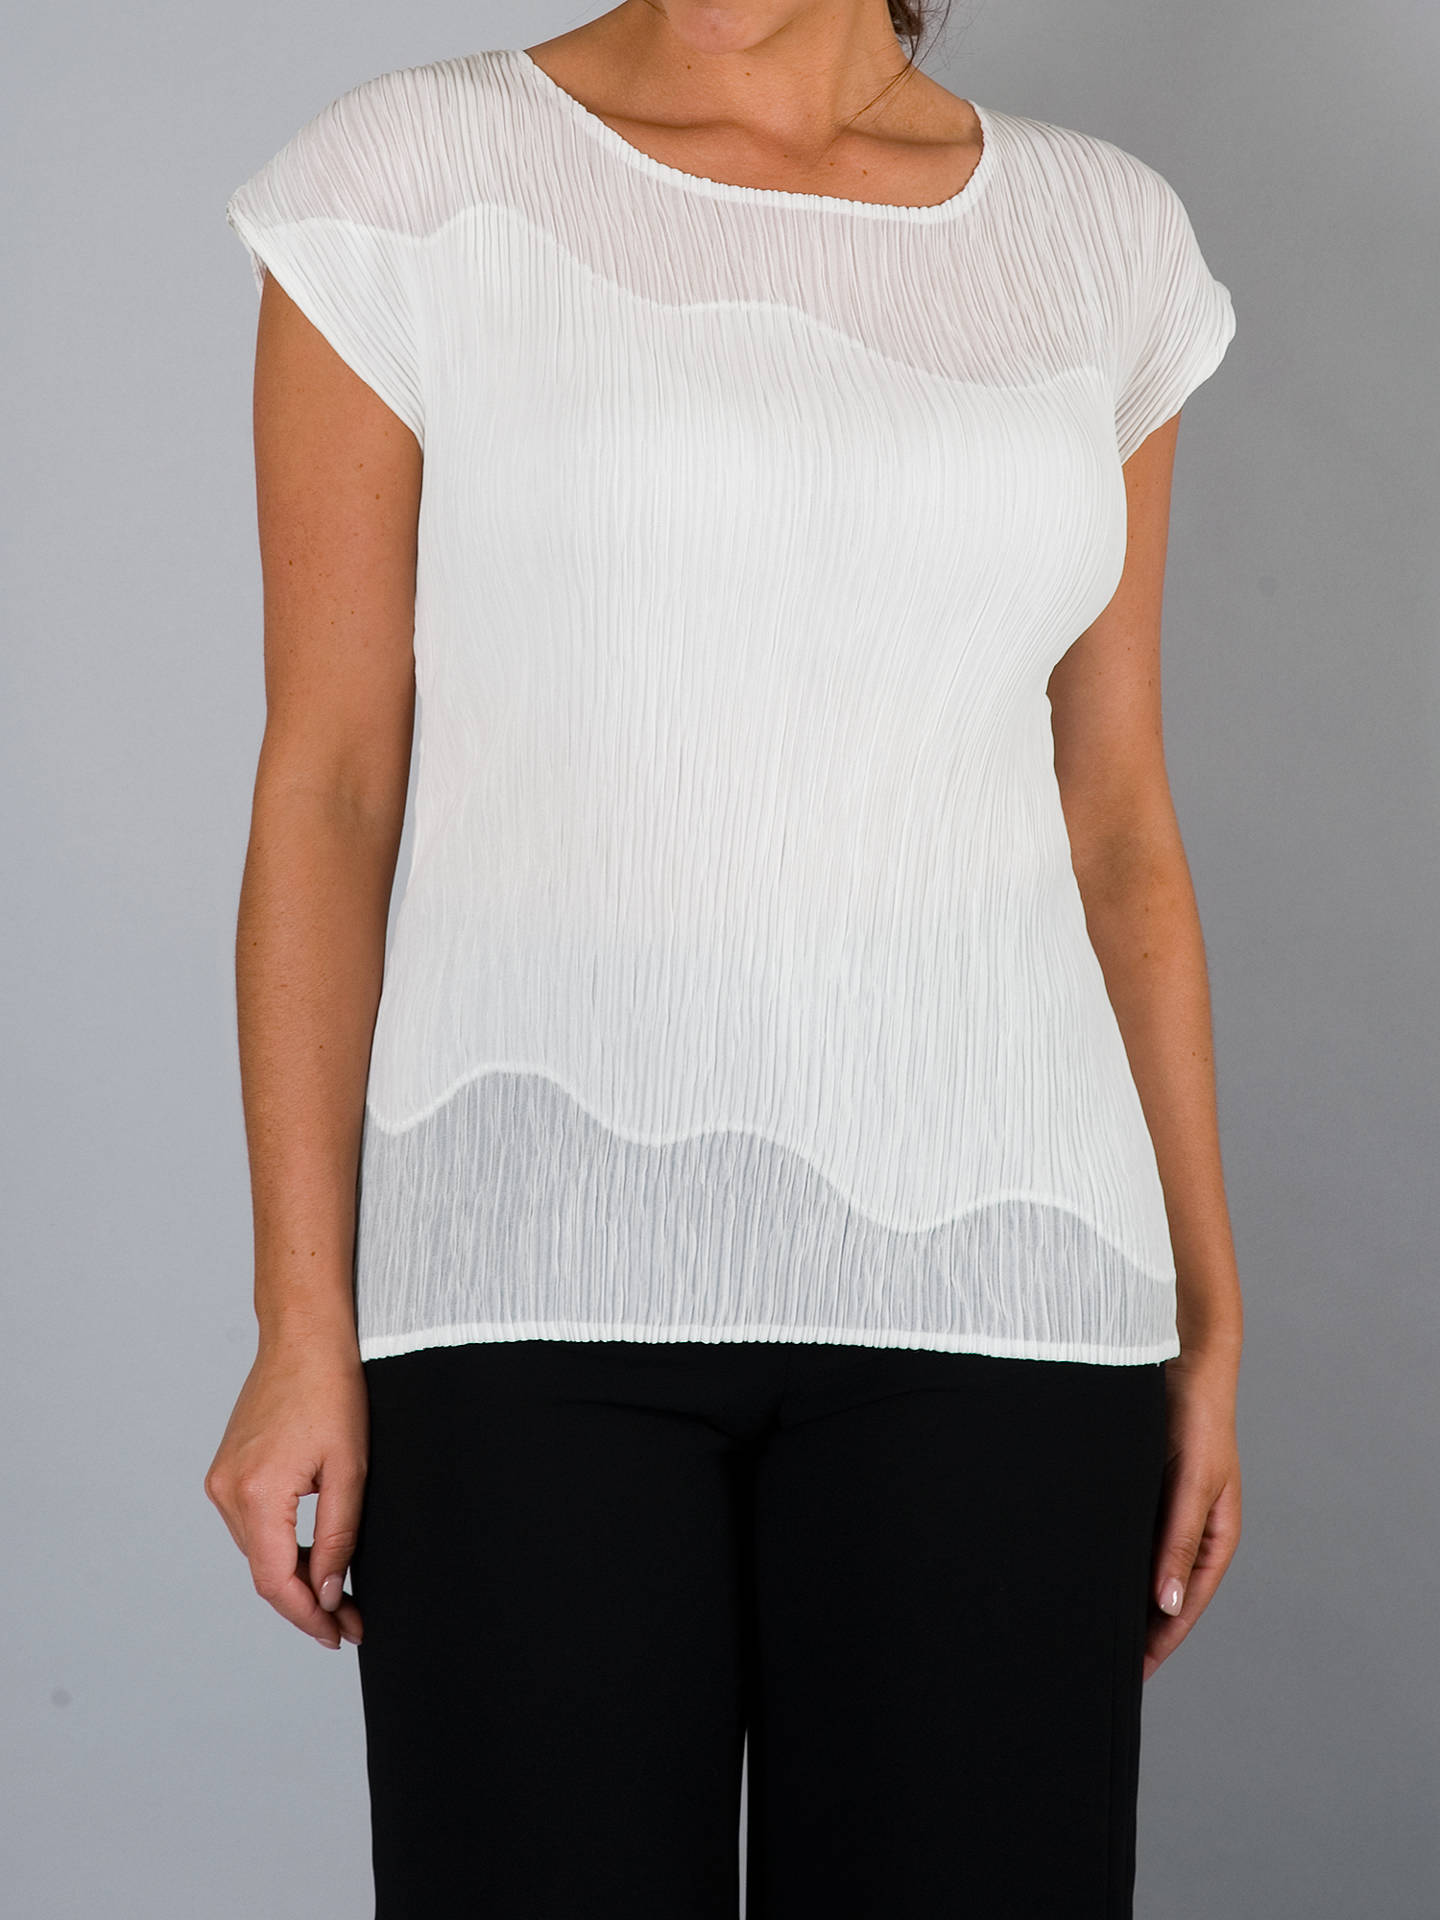 Buy Chesca Chiffon Trim Crush Pleat Top, Ivory, 12-14 Online at johnlewis.com